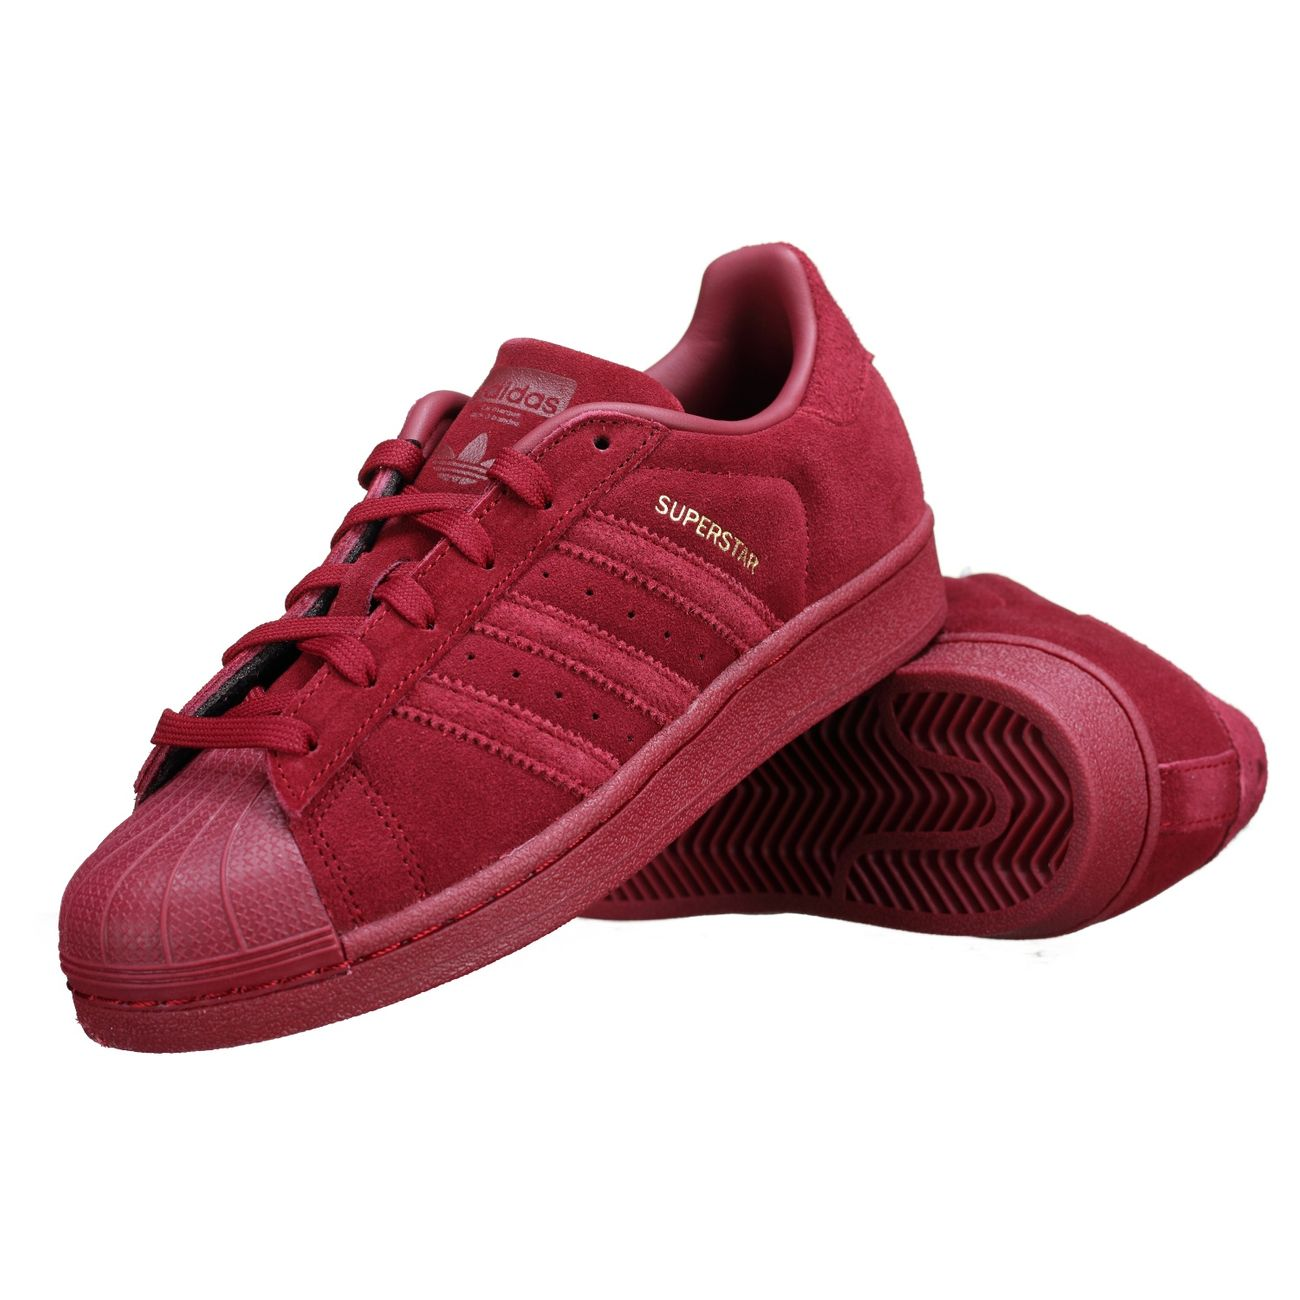 adidas superstar rouge pas cher